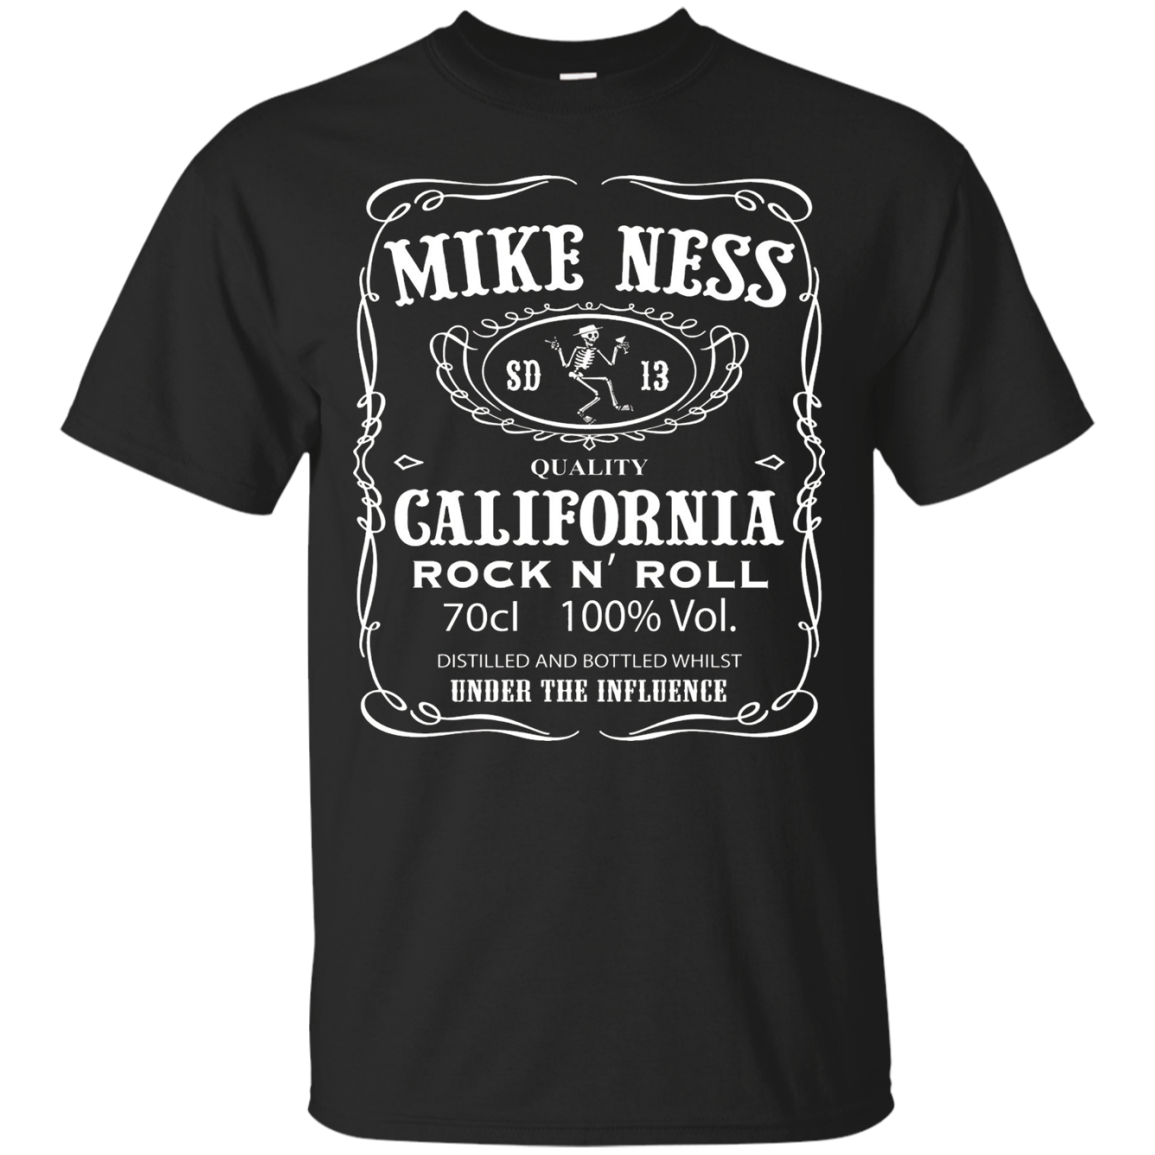 Mike Ness SD 13. Quality Galifornia Rock N' Roll T-shirt